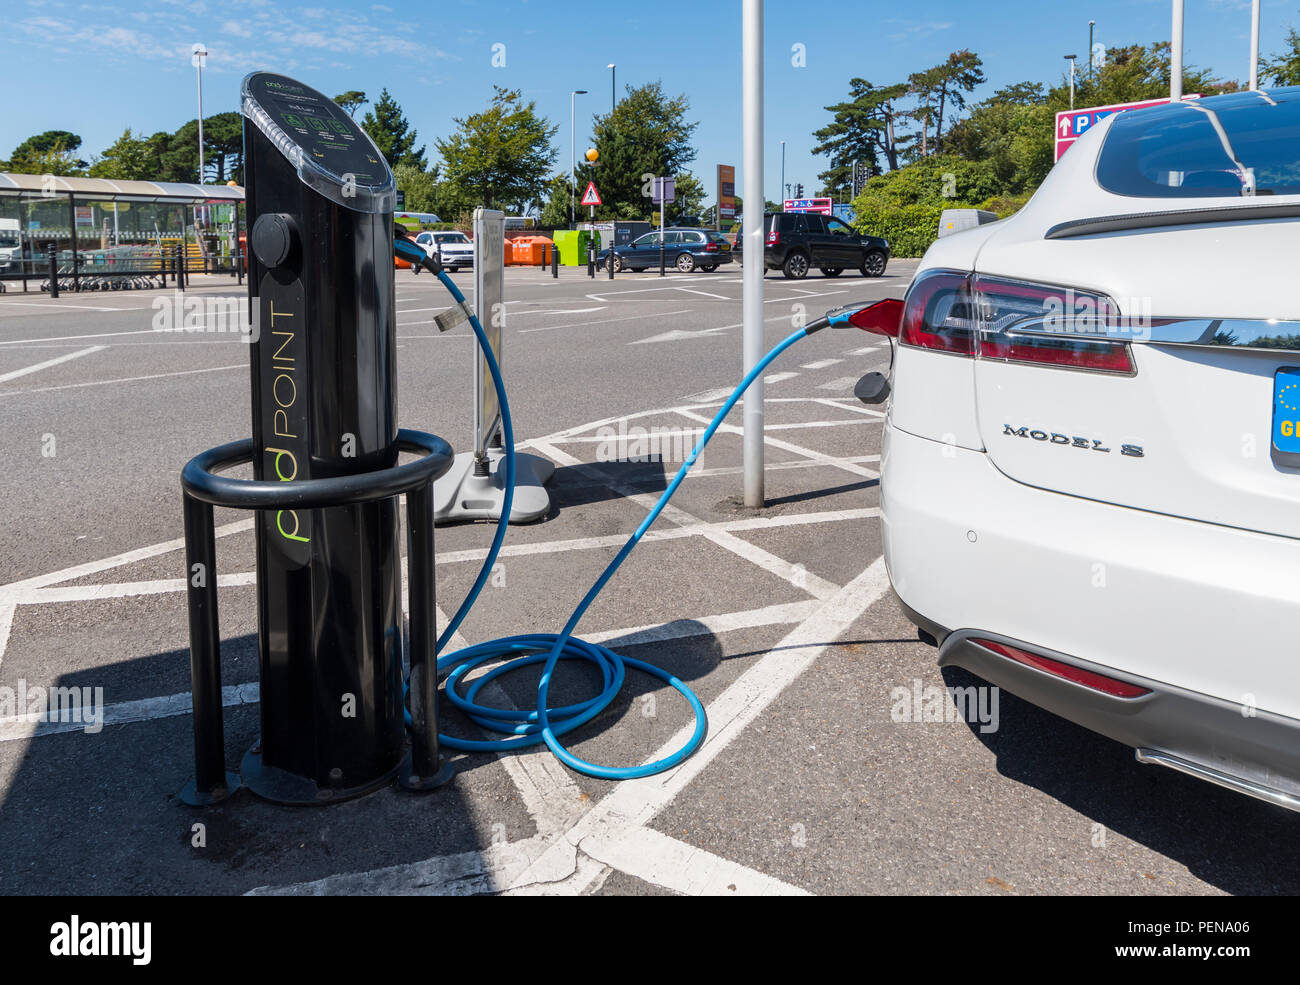 Voiture électrique branché sur un point de recharge. Véhicule électrique connecté à un port de charge dans le West Sussex, Angleterre, Royaume-Uni. Photo Stock